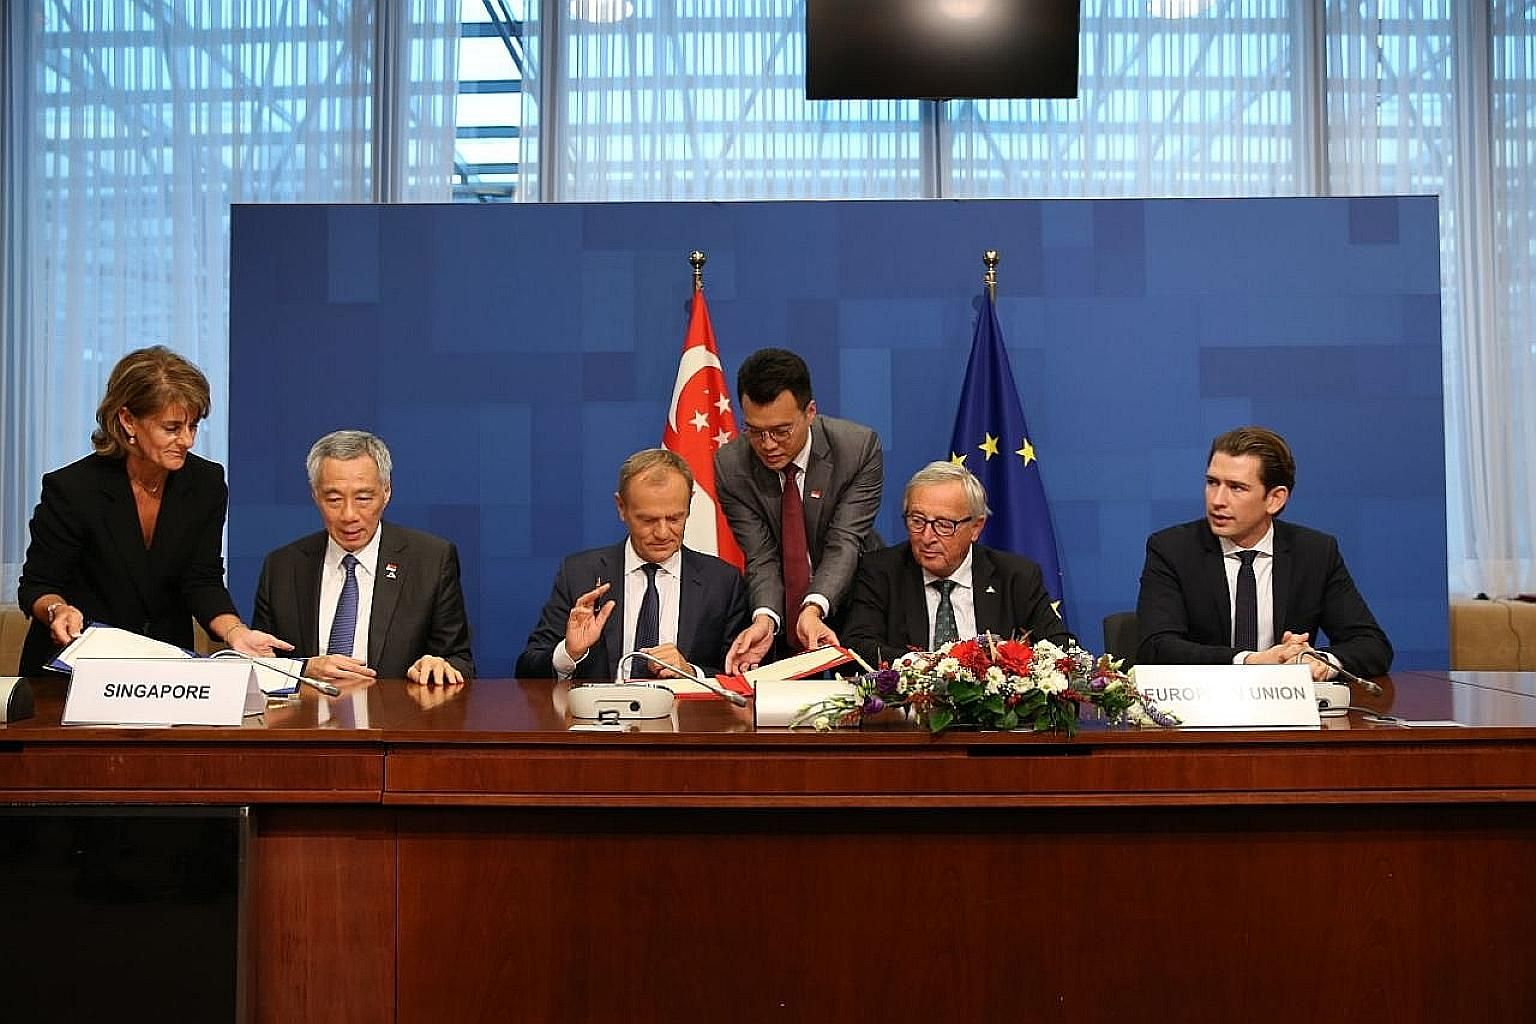 Prime Minister Lee Hsien Loong at the signing of the EU-Singapore FTA with (from left) European Council President Donald Tusk, European Commission President Jean-Claude Juncker and Austrian Chancellor Sebastian Kurz.